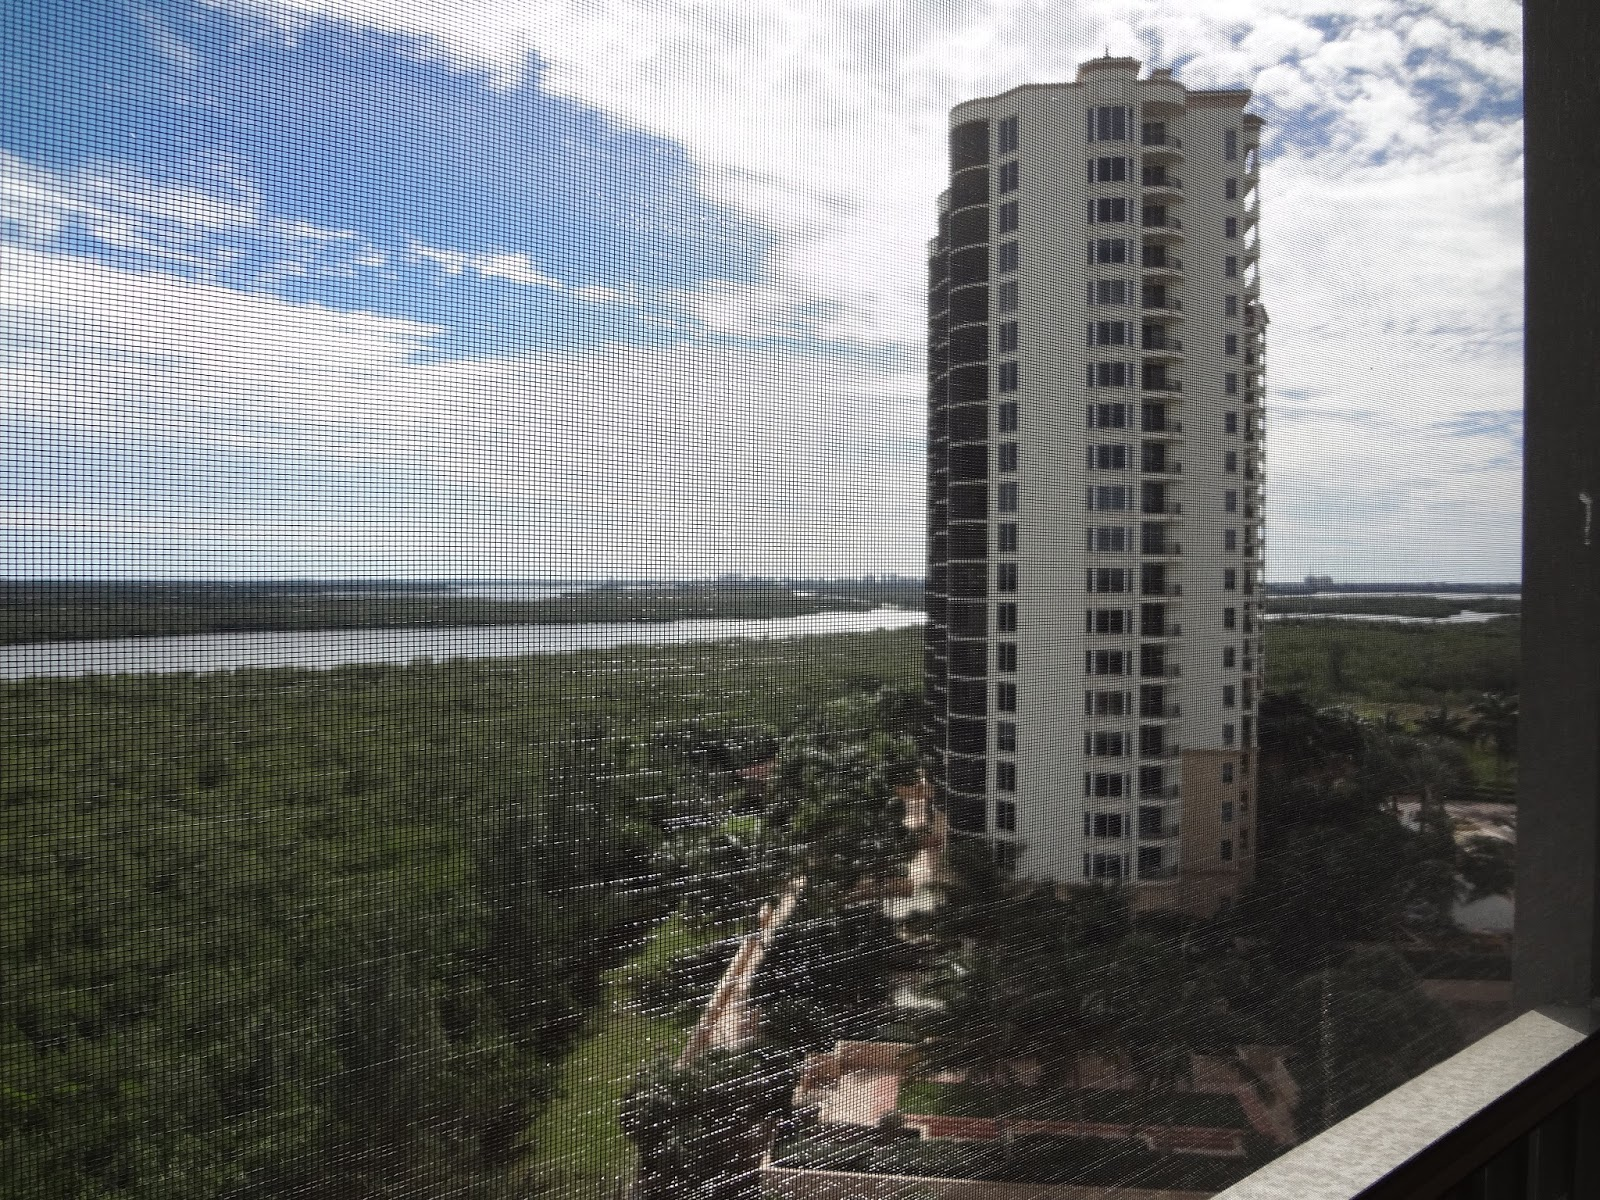 there are three high rises at the hammock bay  plex  townsend topics  meteotsunami strikes naples  rh   townsendtopics blogspot